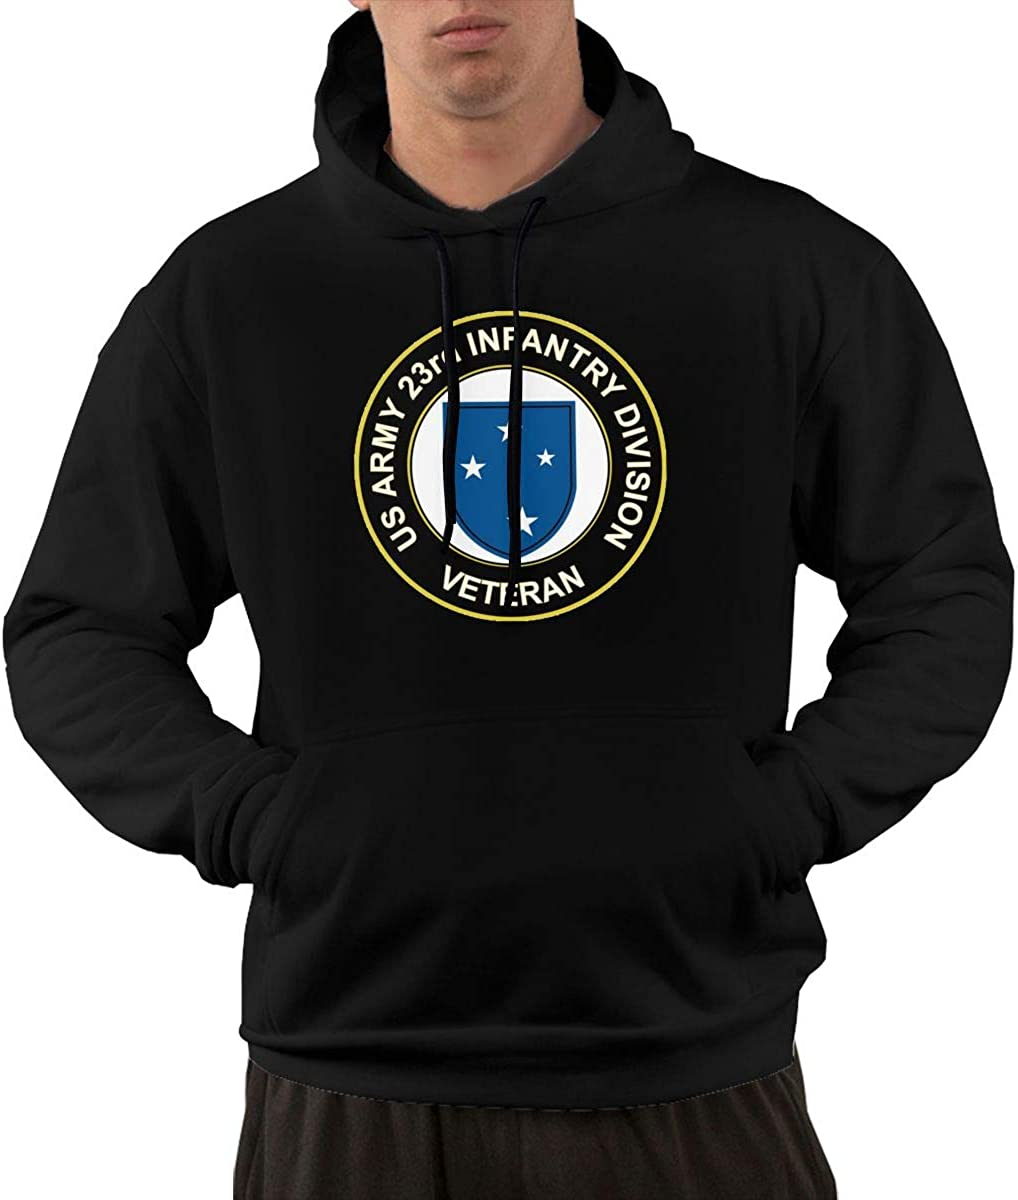 Army Veteran 23rd Infantry Division Mens Front Pocket Pullover Cotton Hoodie Sweatshirts U.S